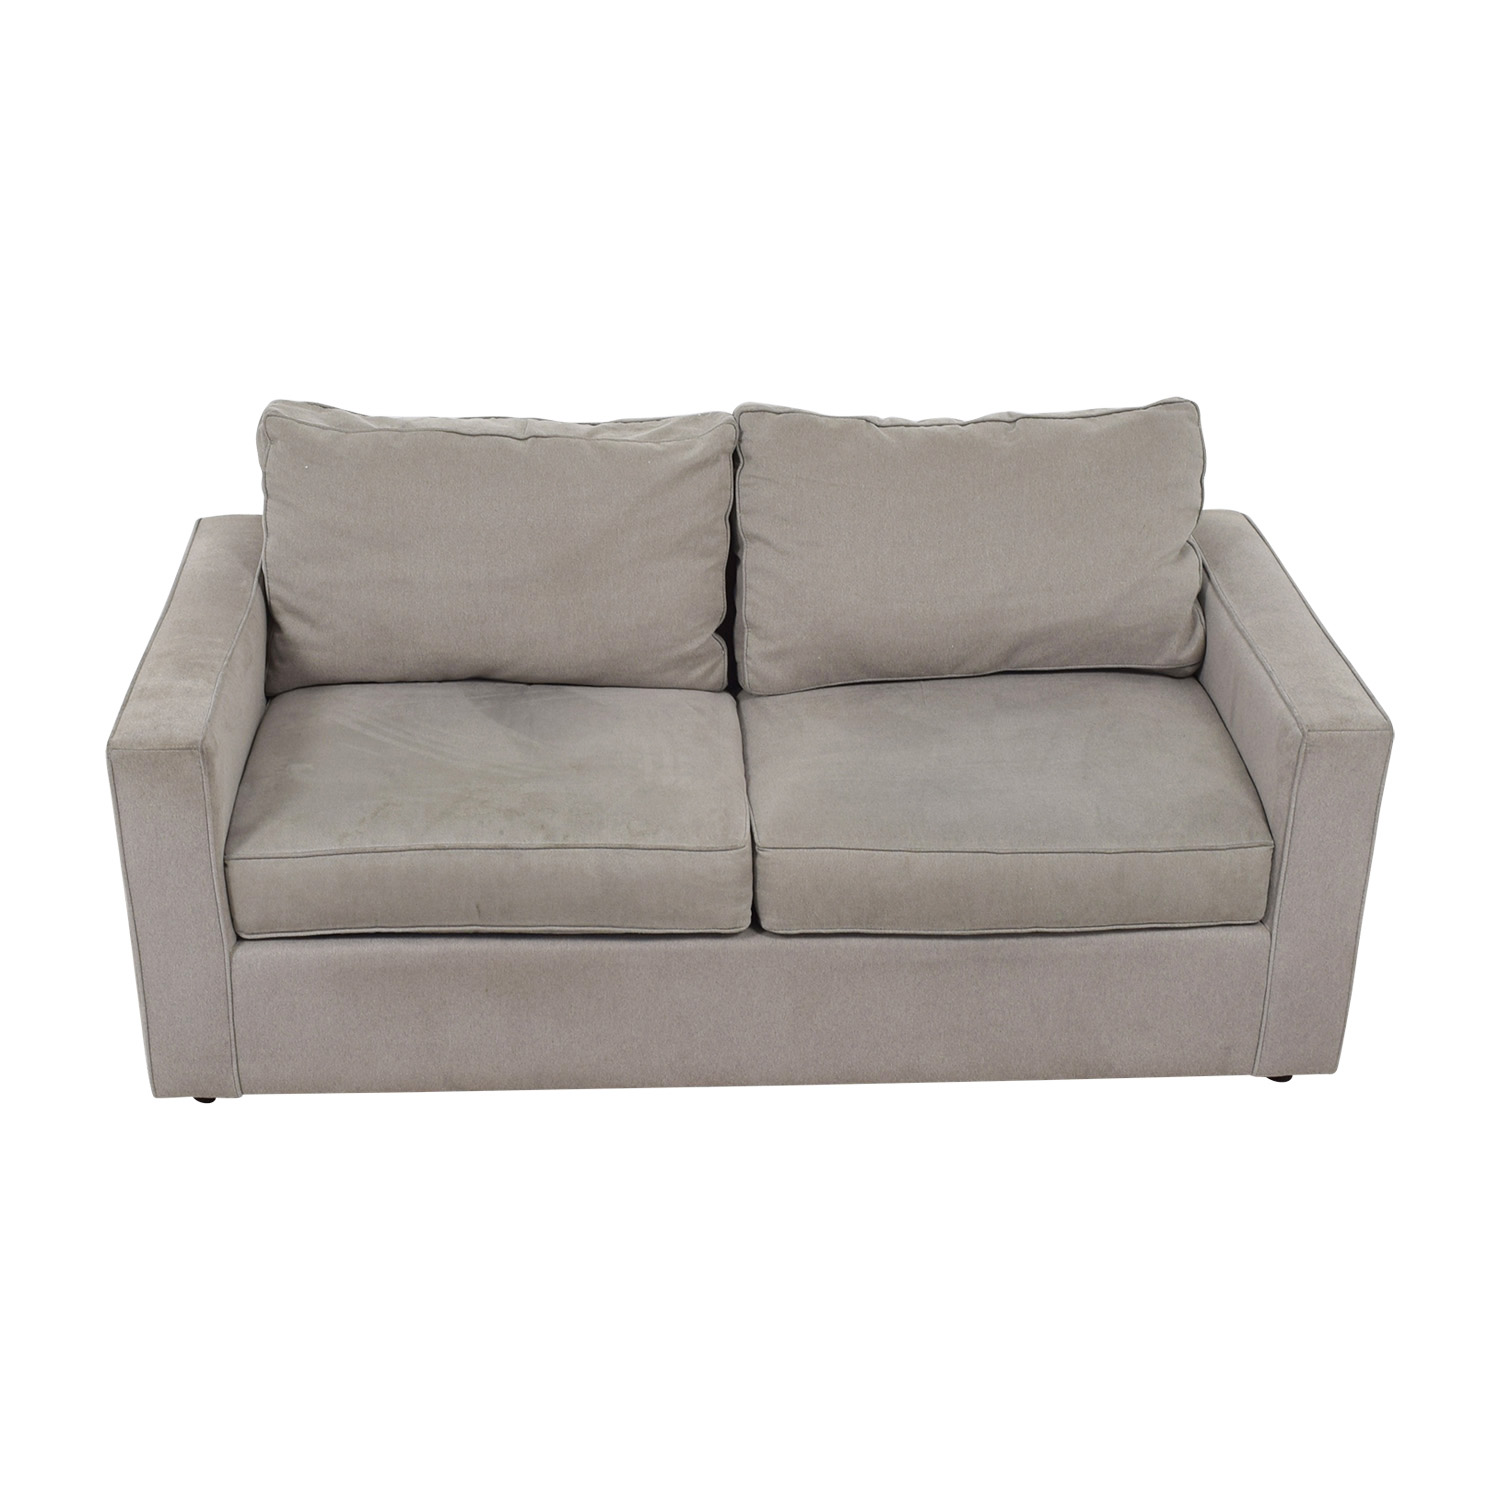 shop Room & Board York Grey Two-Cushion Sofa Room & Board Classic Sofas